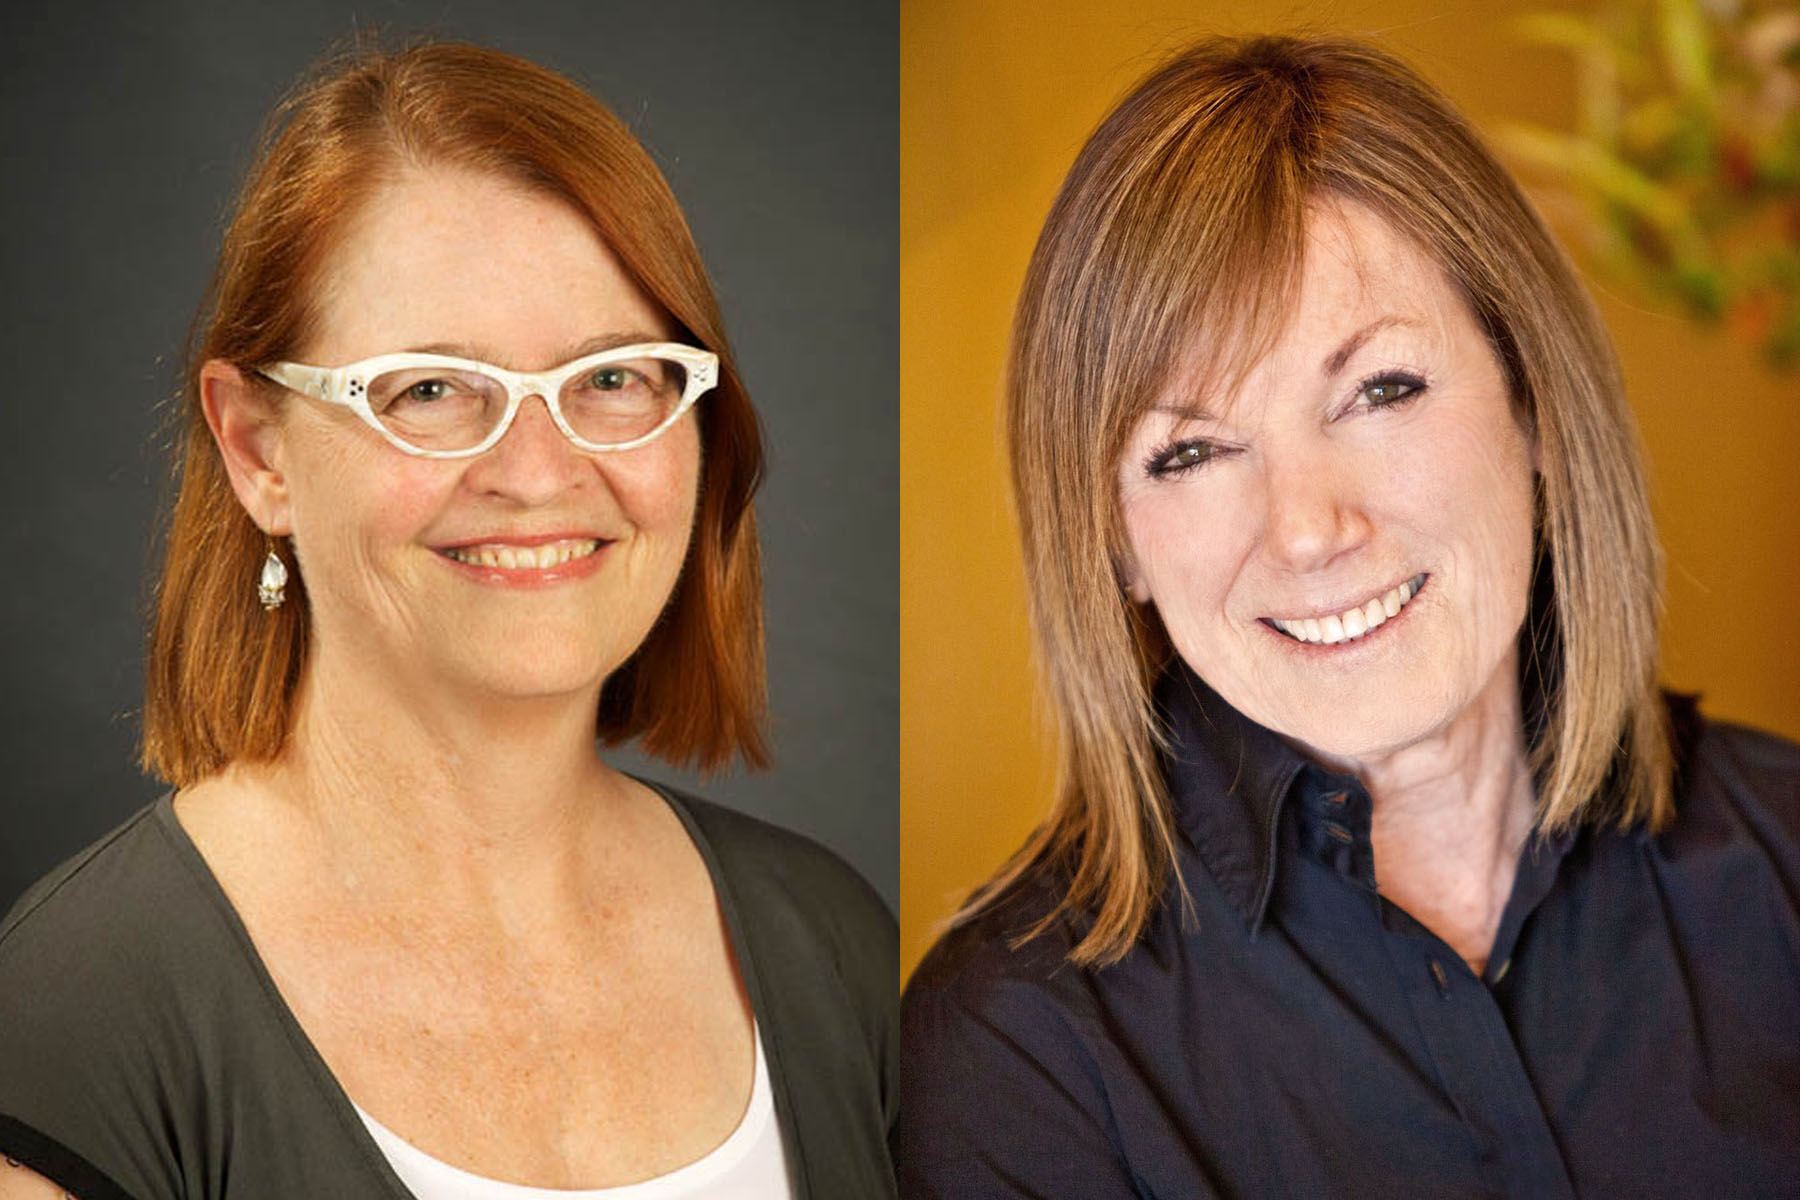 McCroskey, Smith Appointed to County Commission on Children and Families